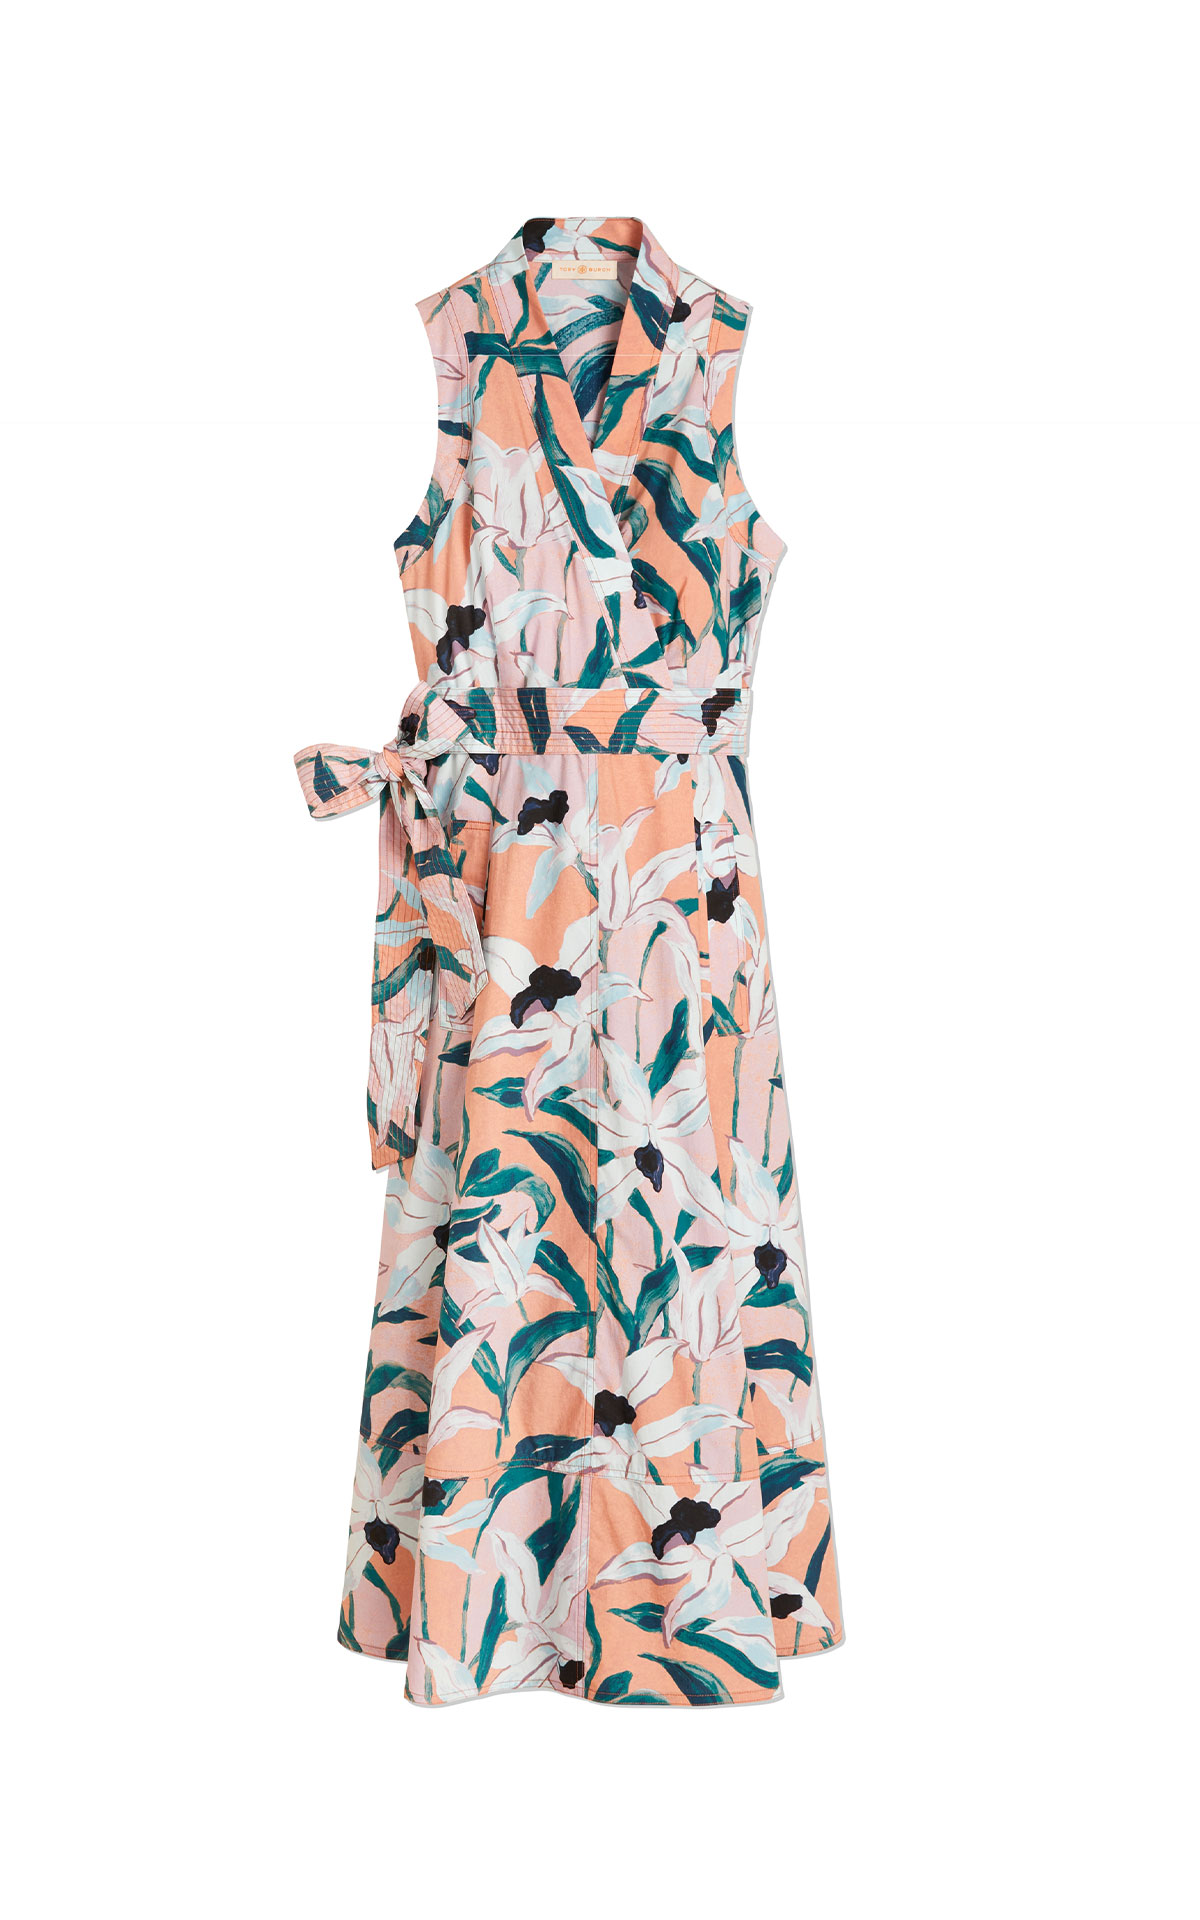 Tory Burch Printed wrap dress from Bicester Village